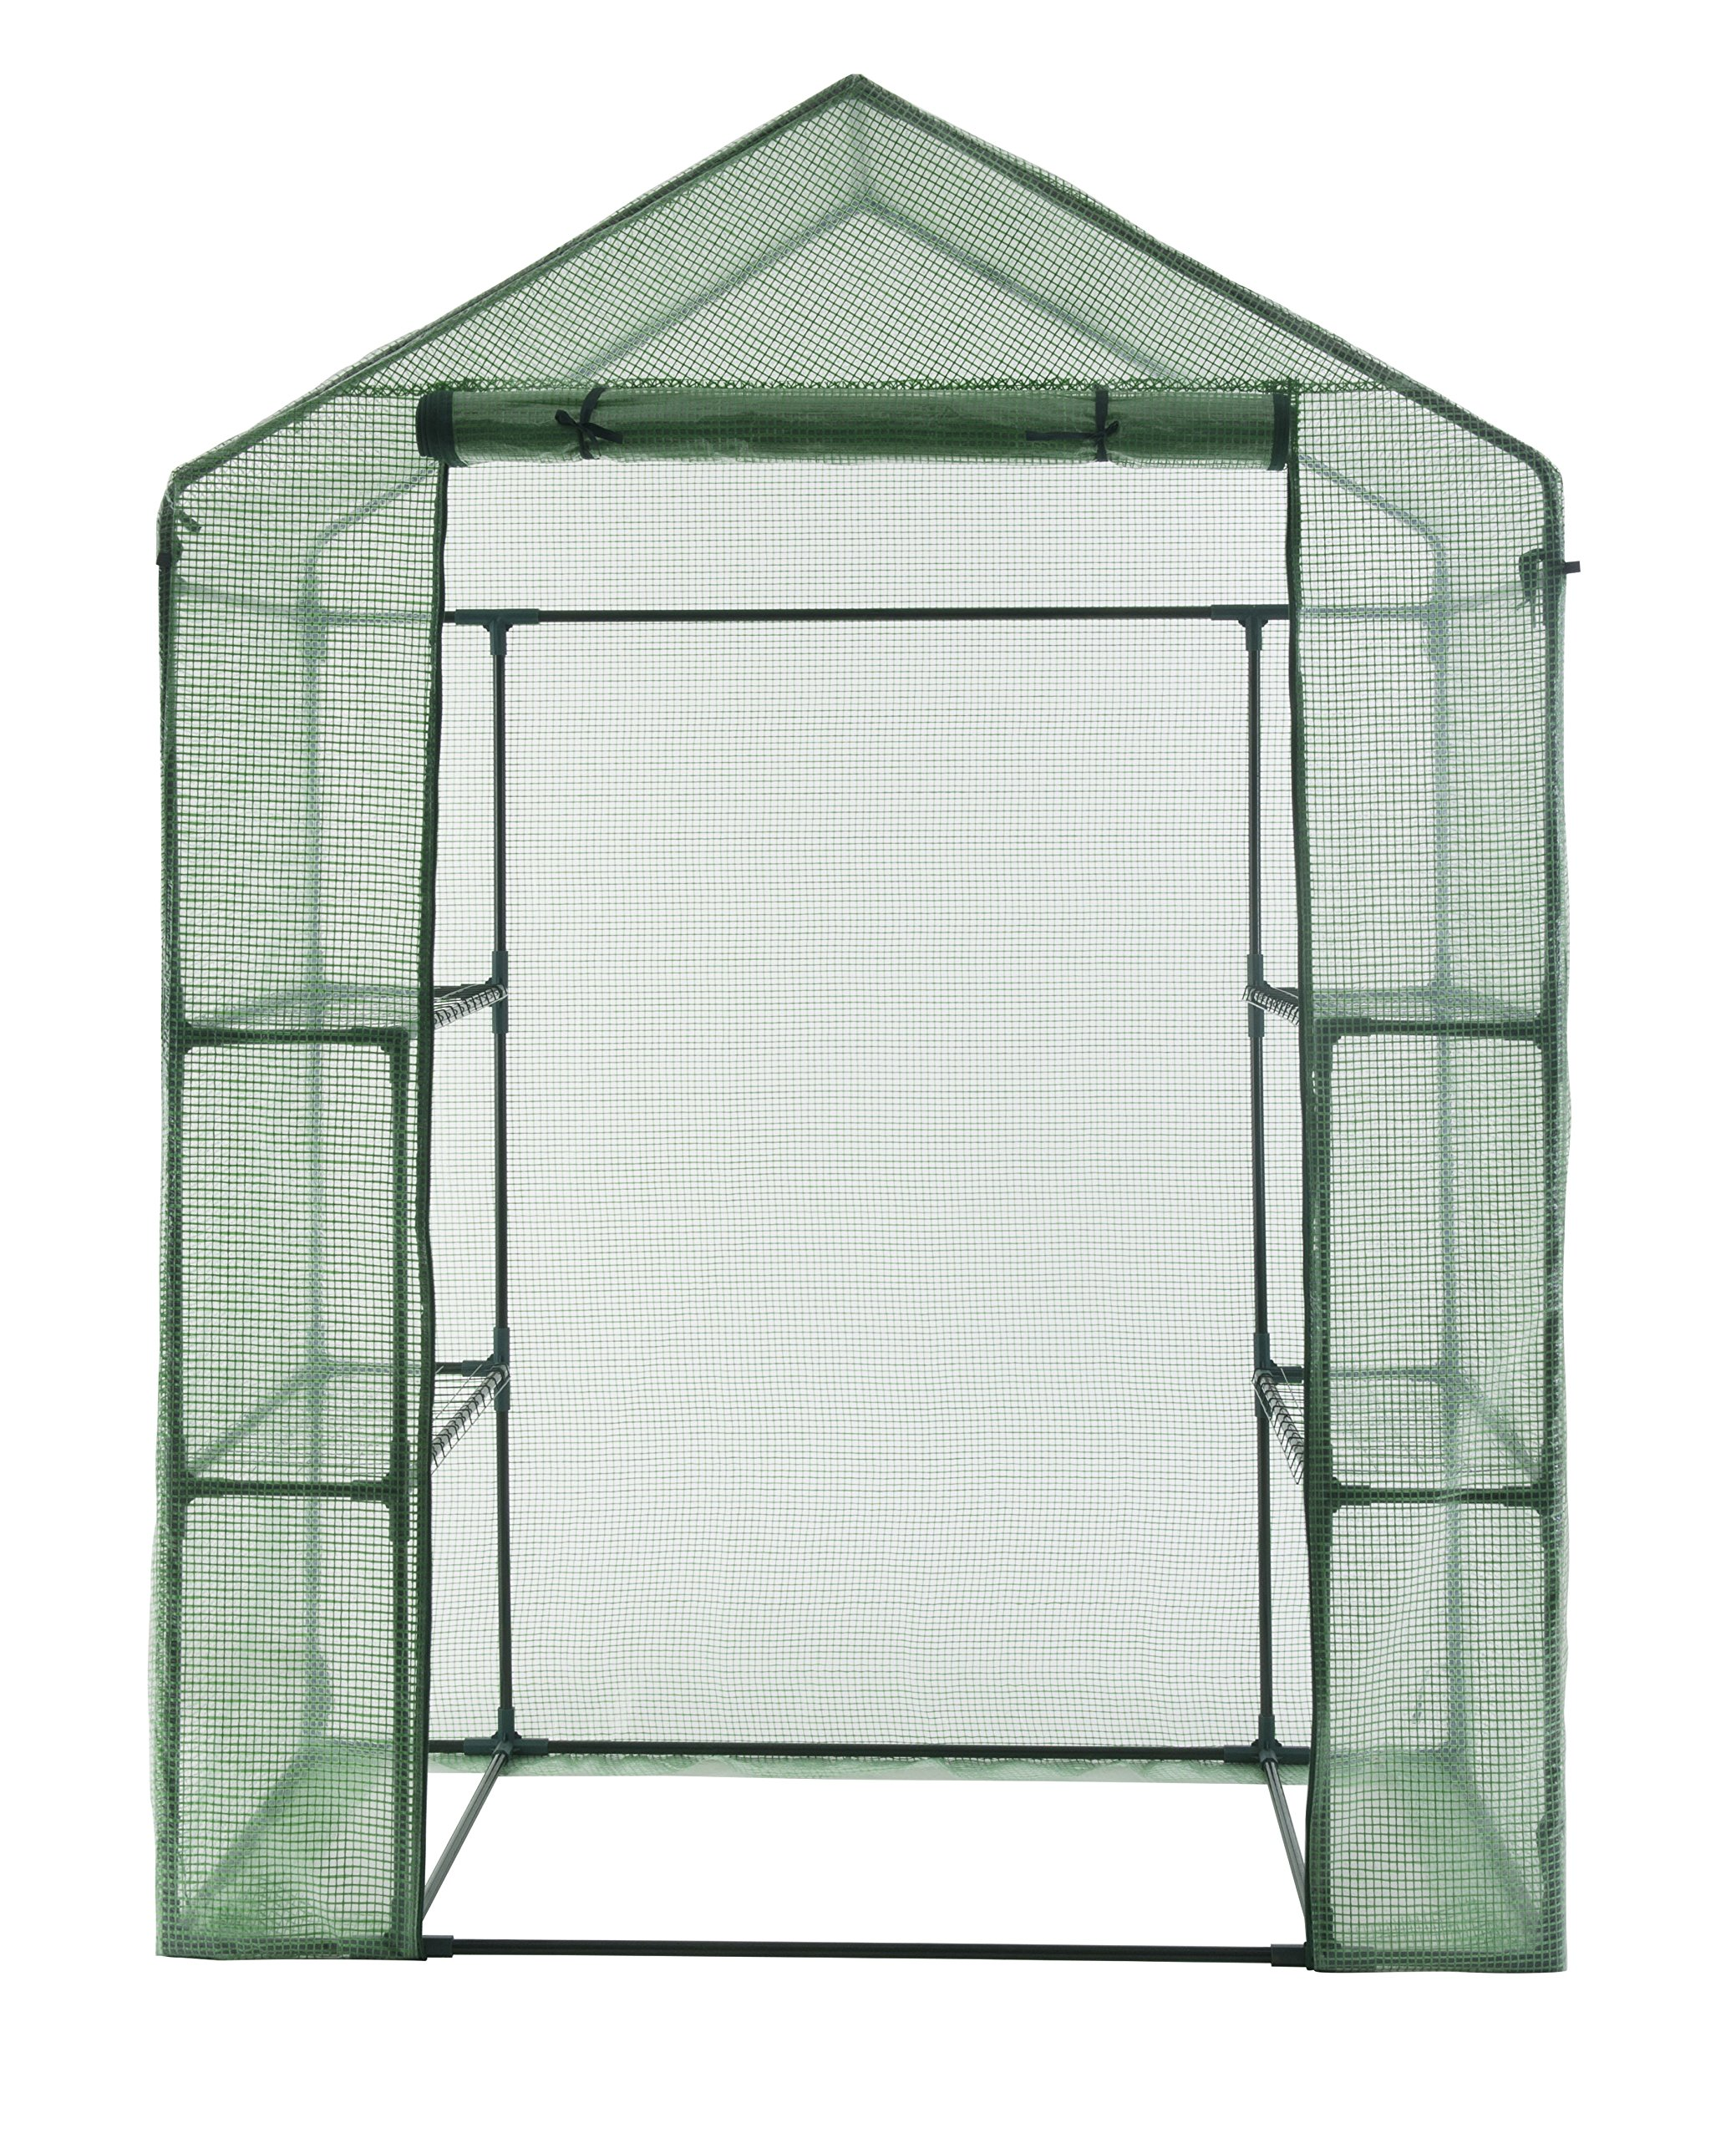 GOJOOASIS Walk in Portable Garden Greenhouse Mini Plants Shed Hot House with 3 Tiers by GOJOOASIS (Image #8)